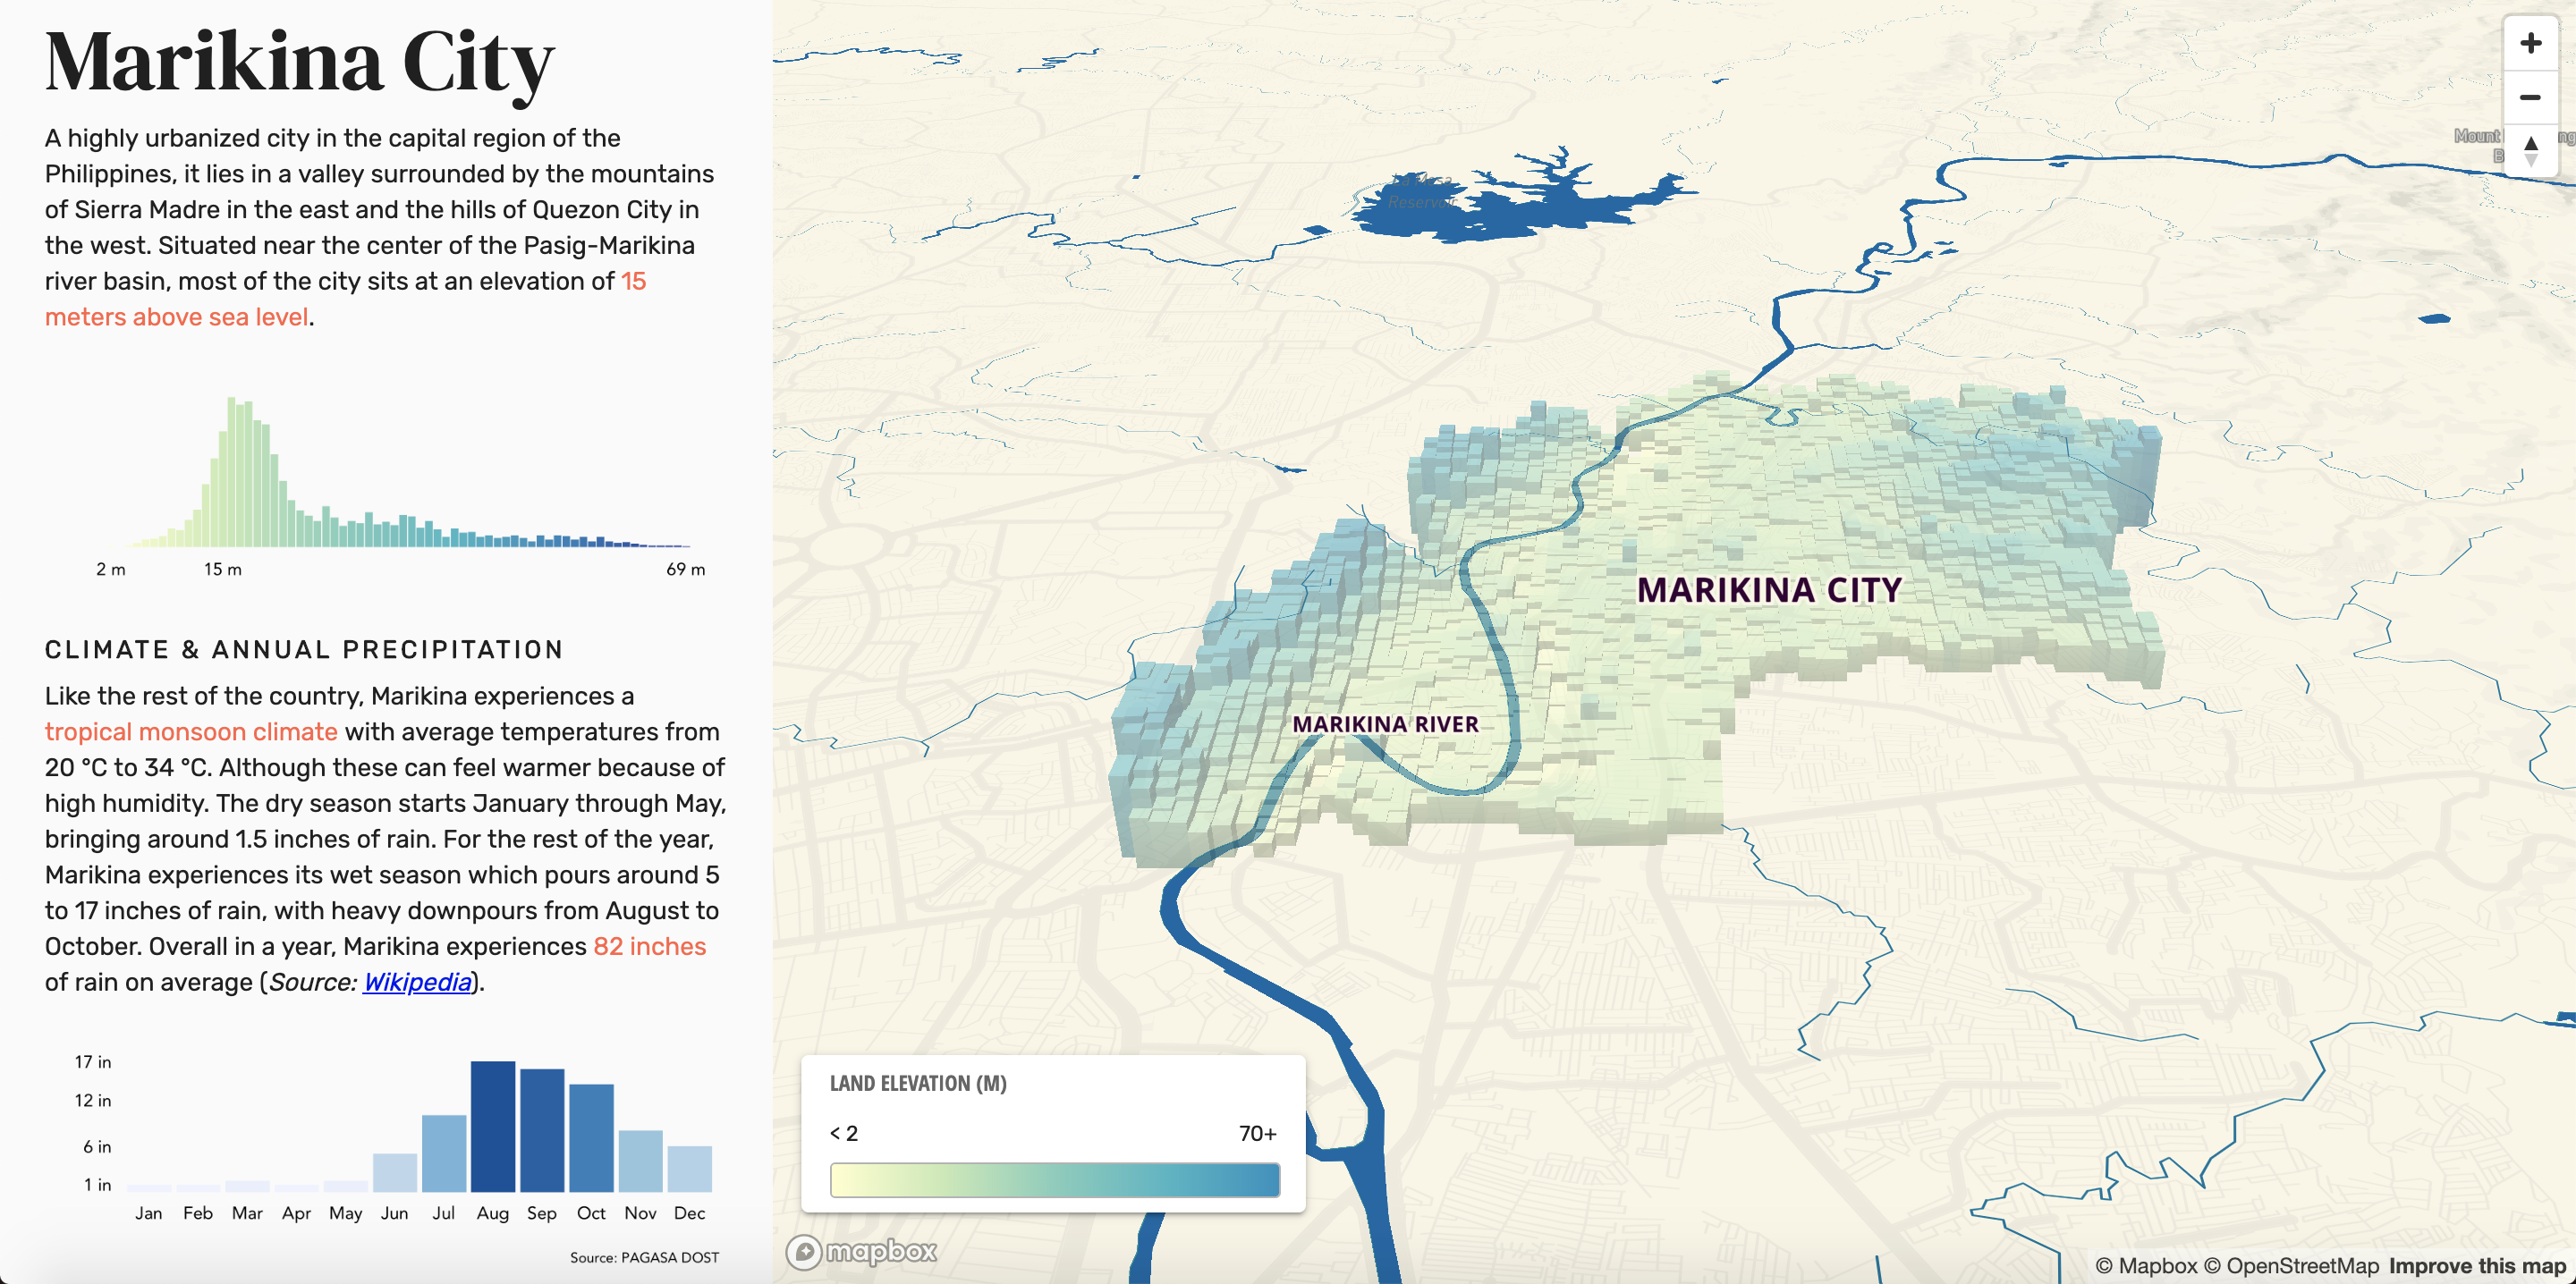 VizRisk — Flooding in Marikina City: A Case Study - Tipping